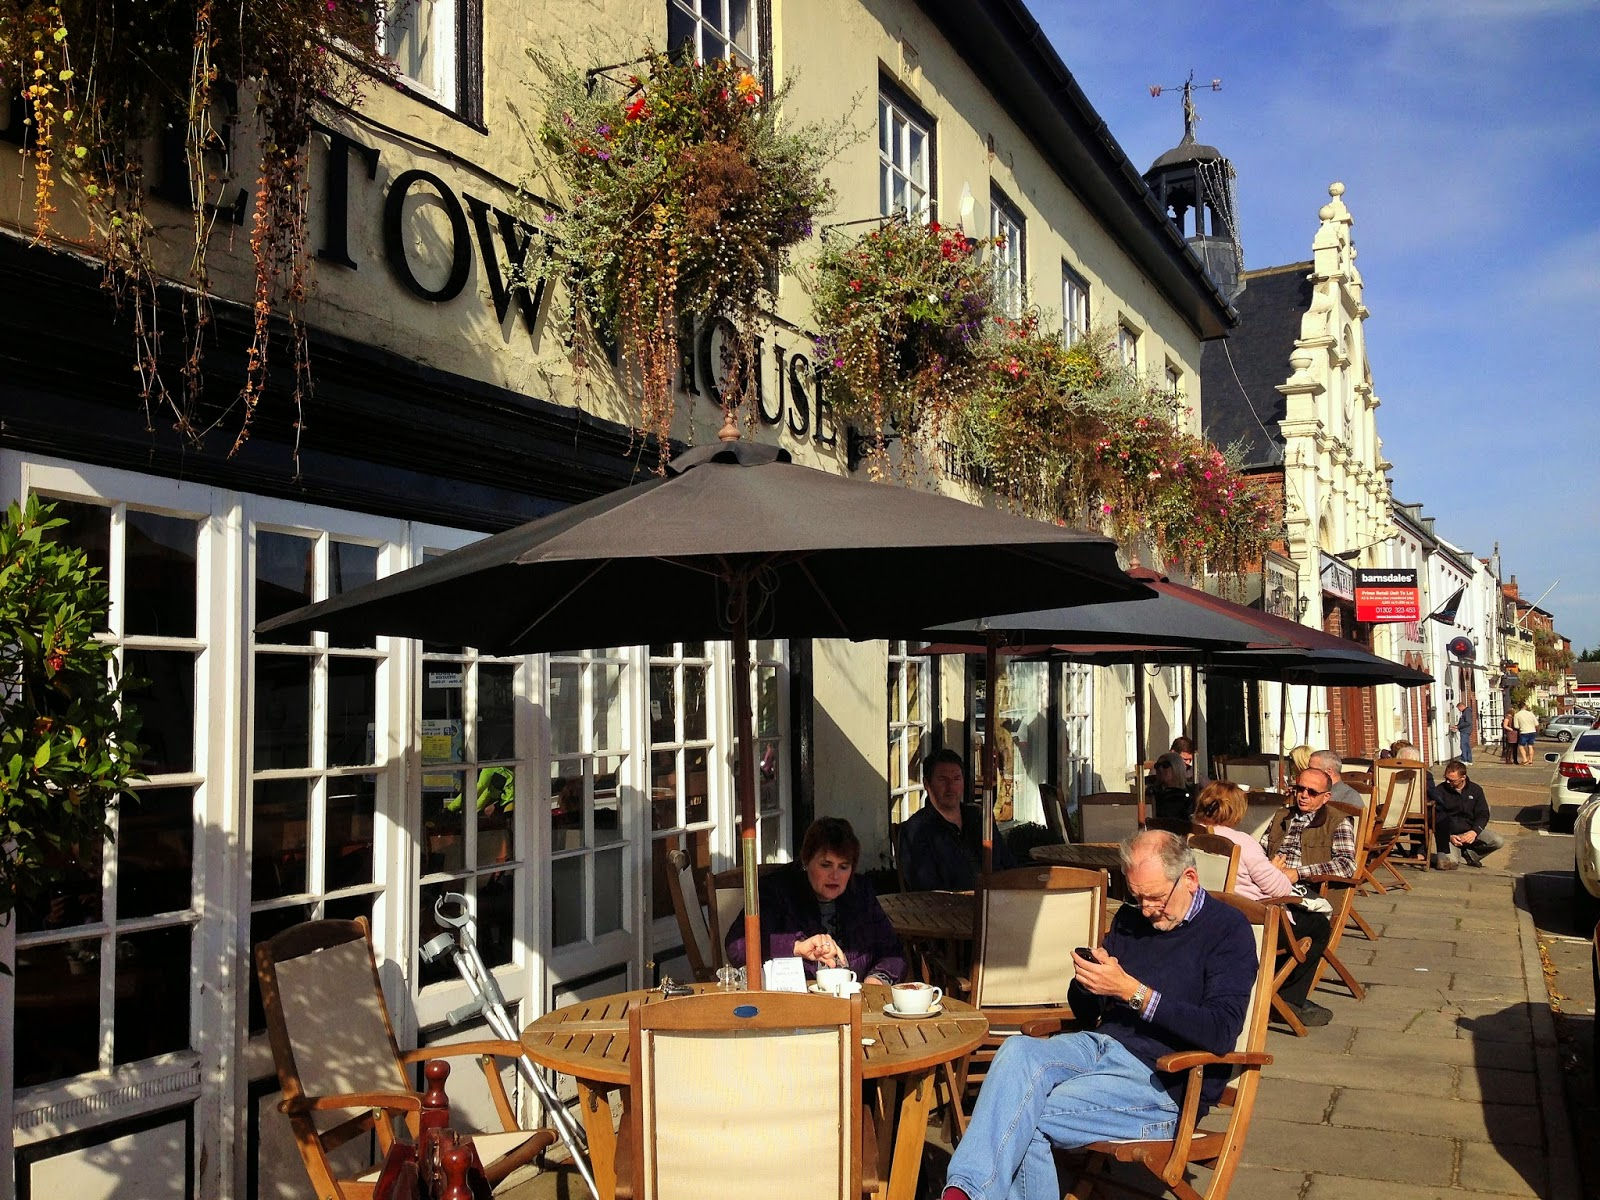 Sunday Brunch at the Town House Tea Rooms, Bawtry